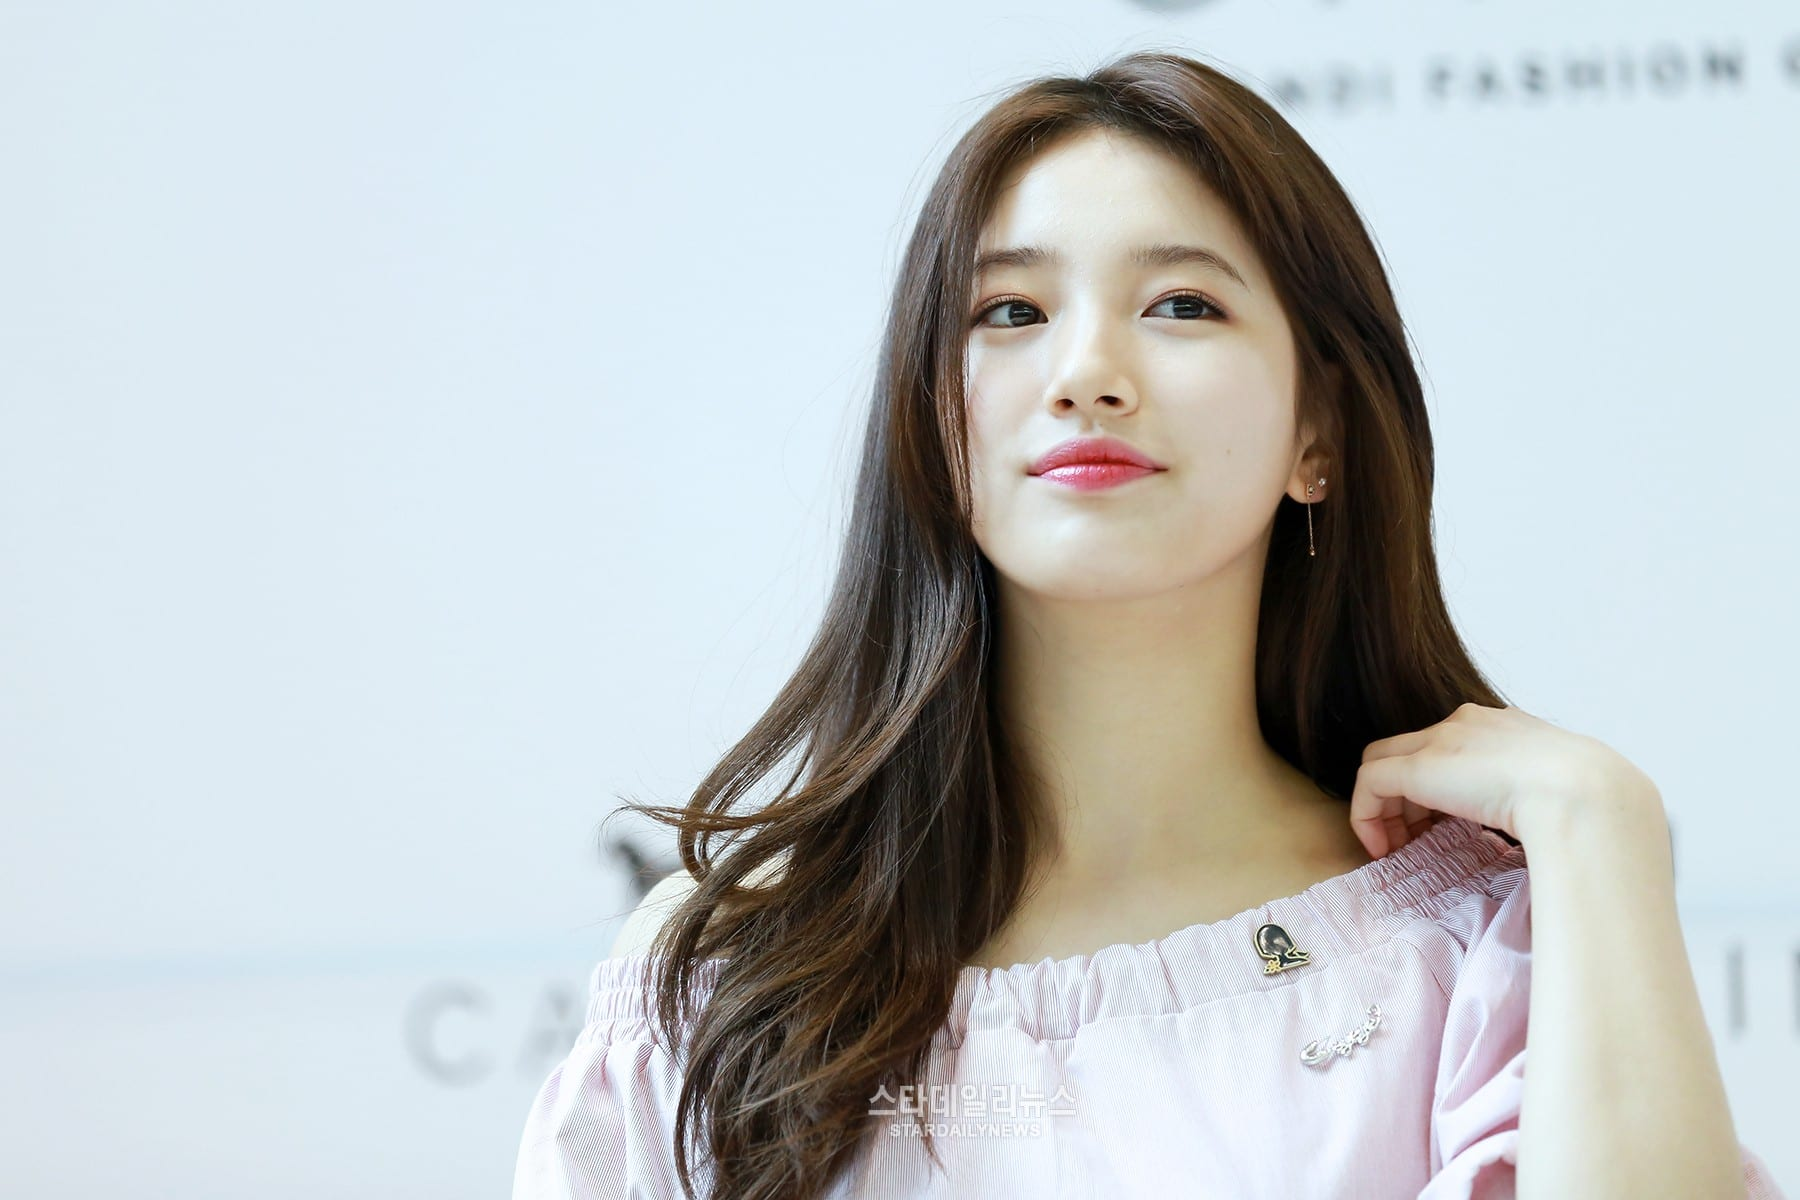 Suzy's Future With JYP Entertainment Undecided As Contract Nears End